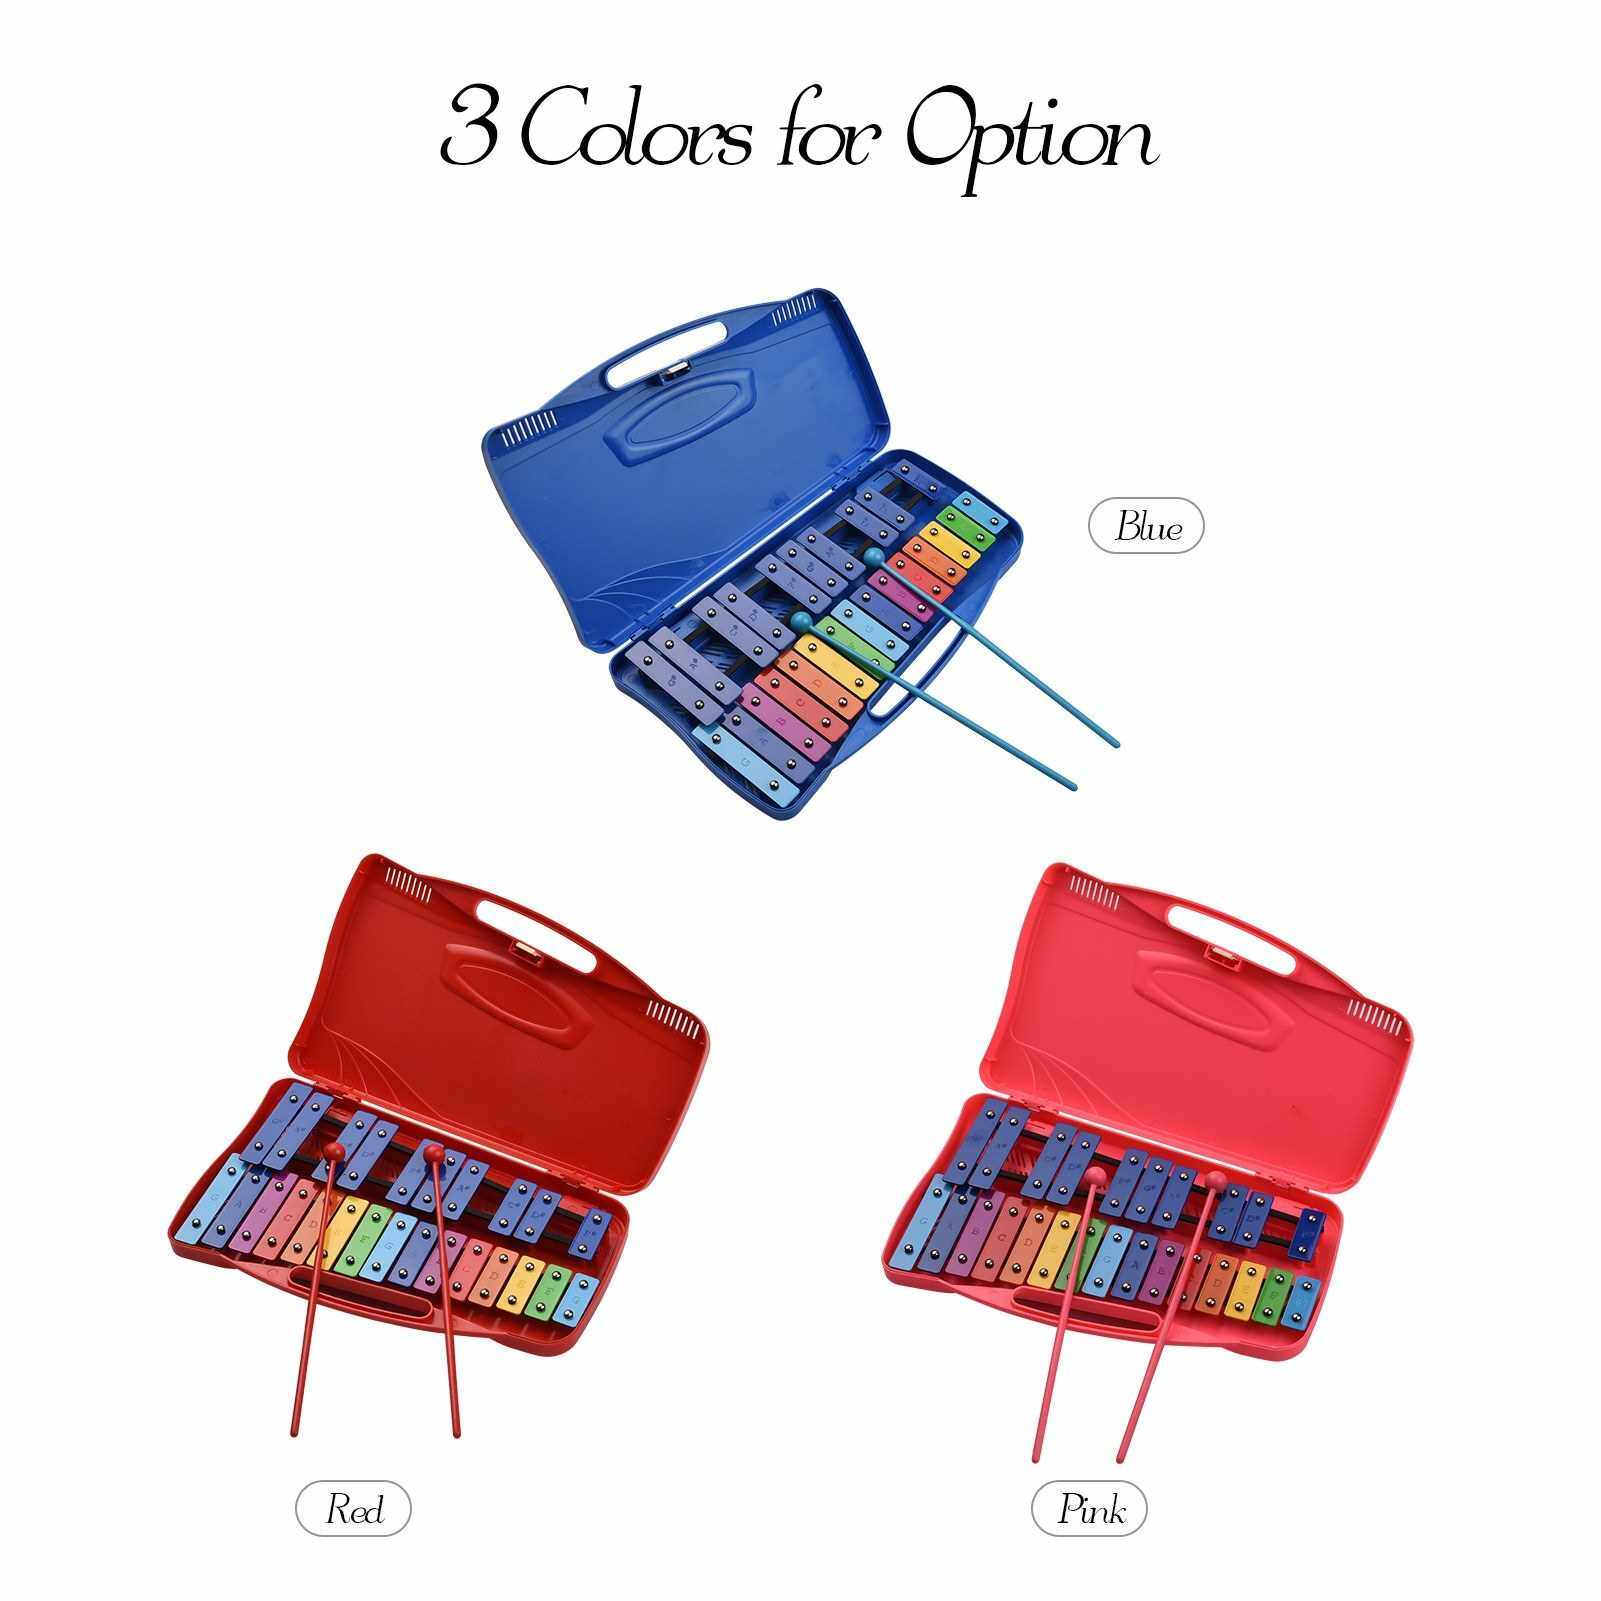 25 Notes Glockenspiel Xylophone Hand Knock Xylophone Percussion Rhythm Musical Educational Teaching Instrument Toy with Case 2 Mallets for Baby Kids Children (Blue)